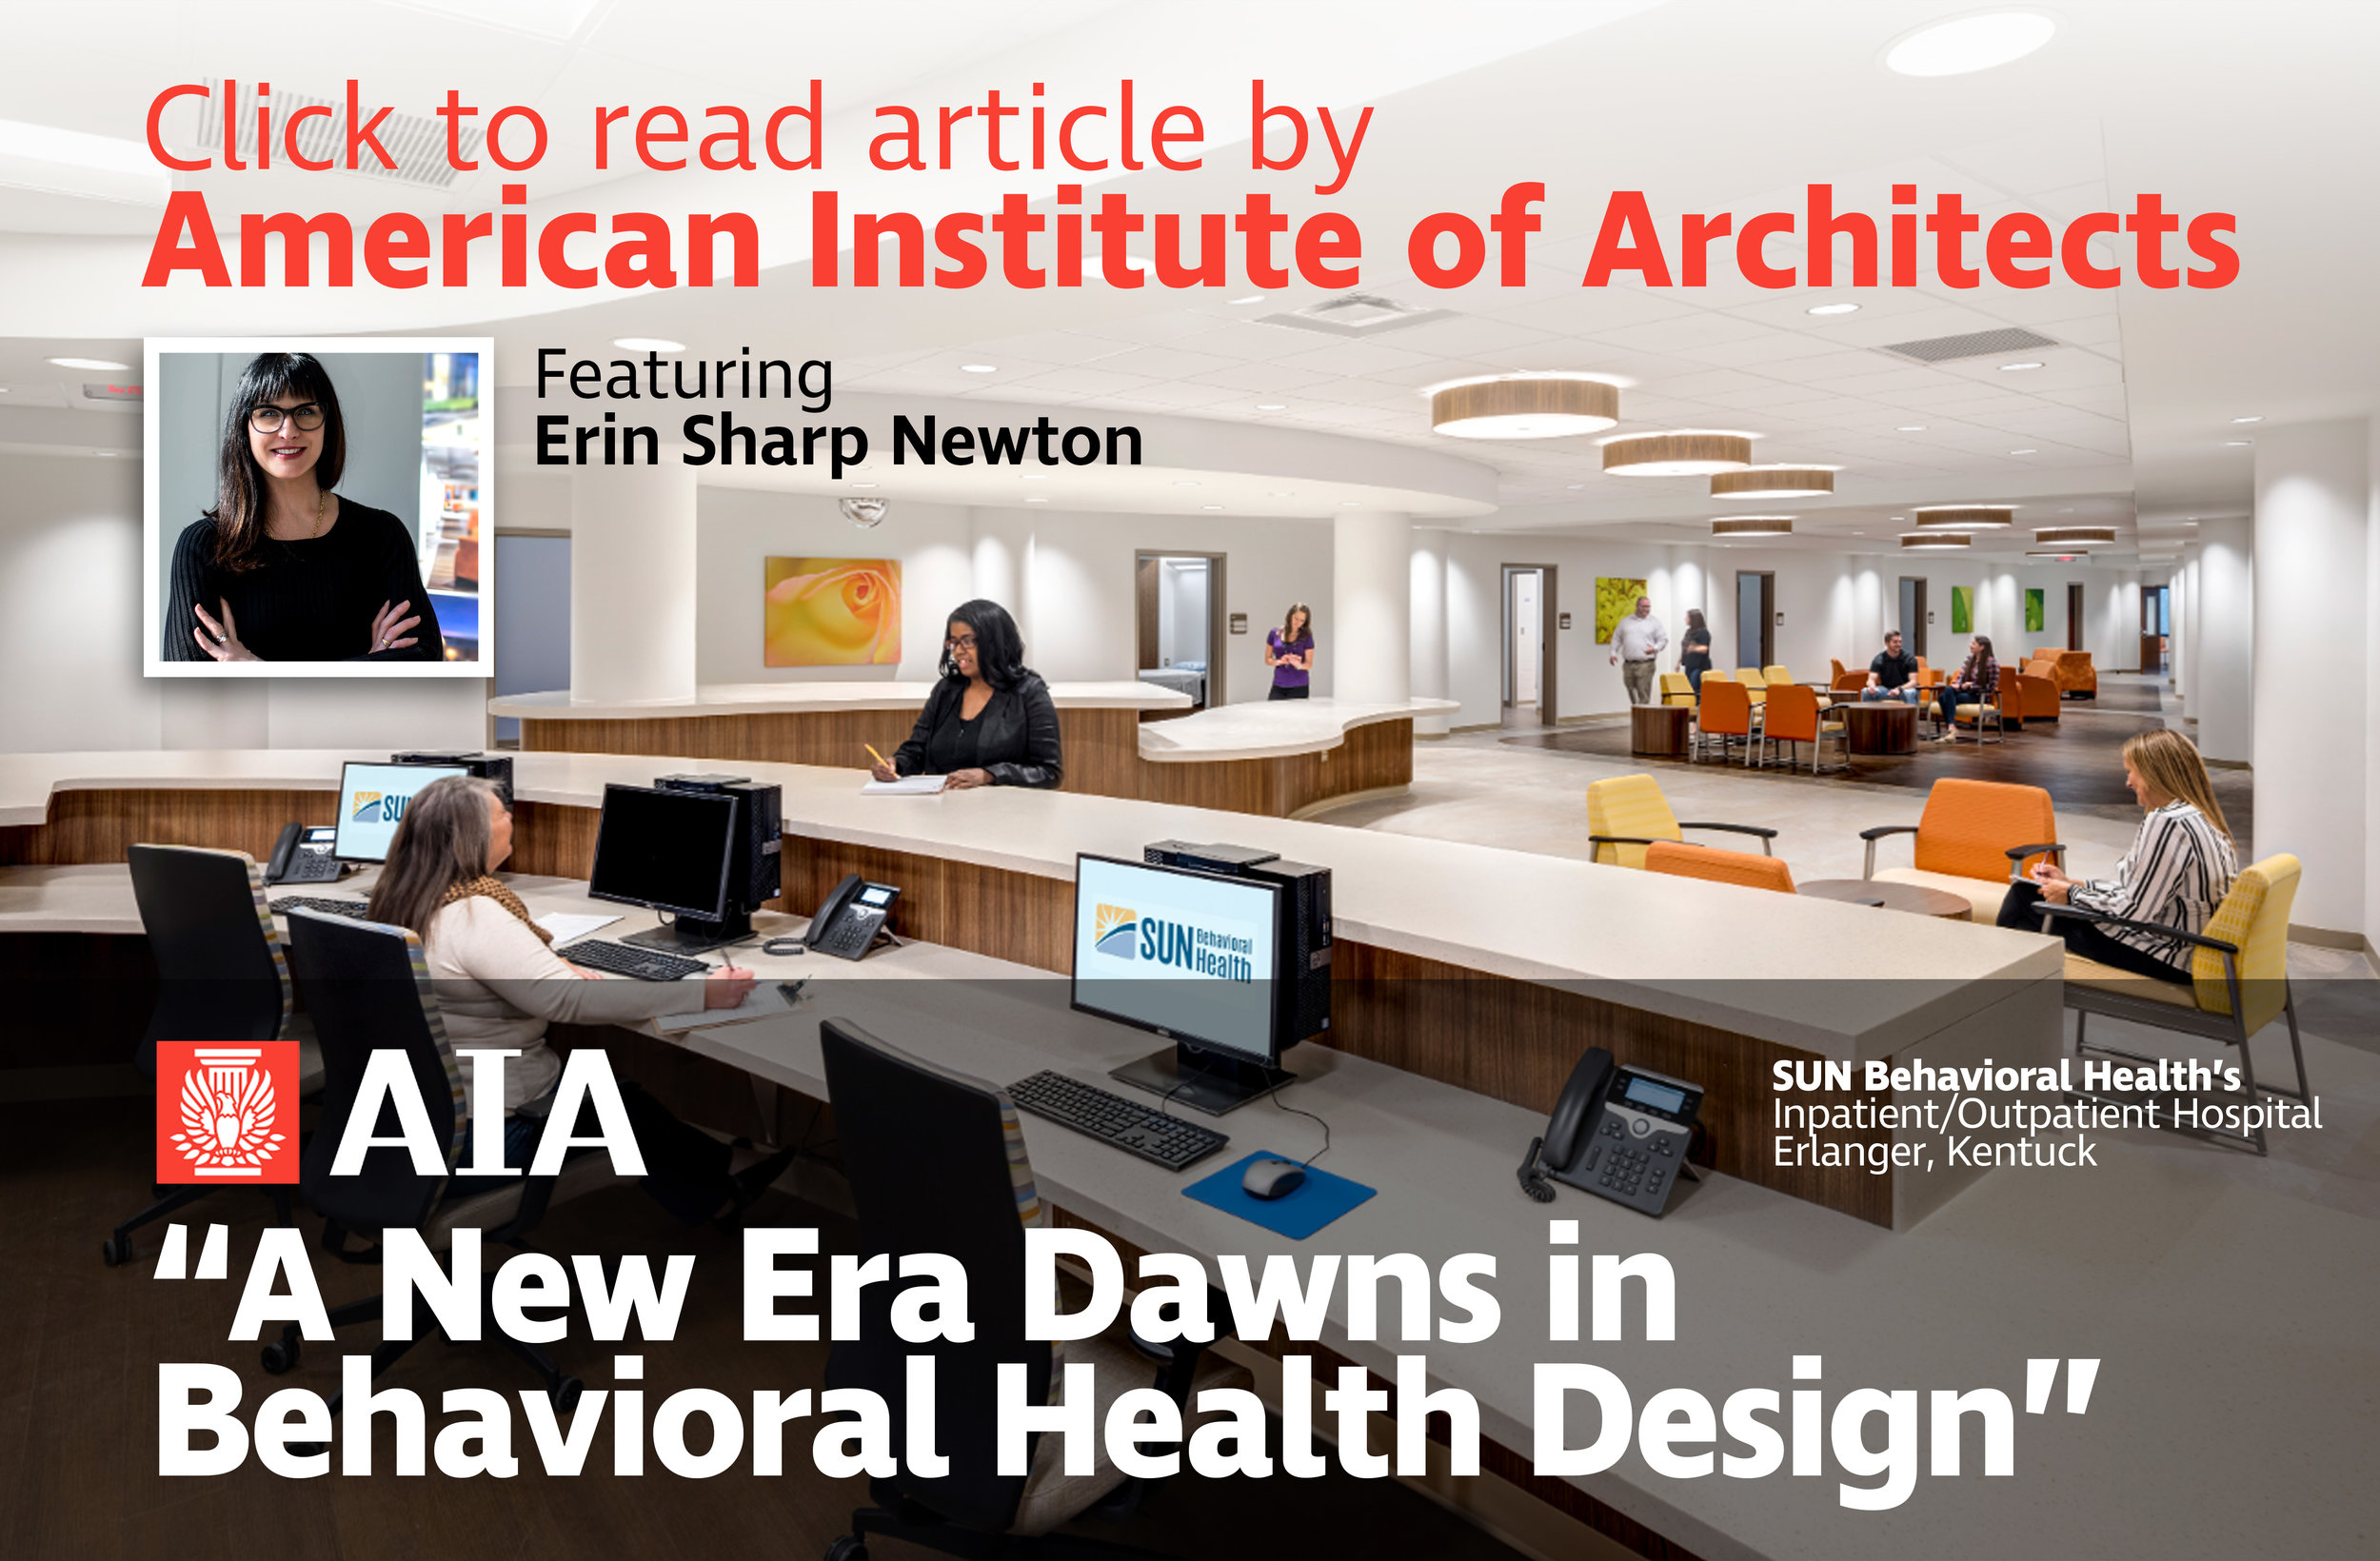 A New Era Dawns in Behavioral Health Design